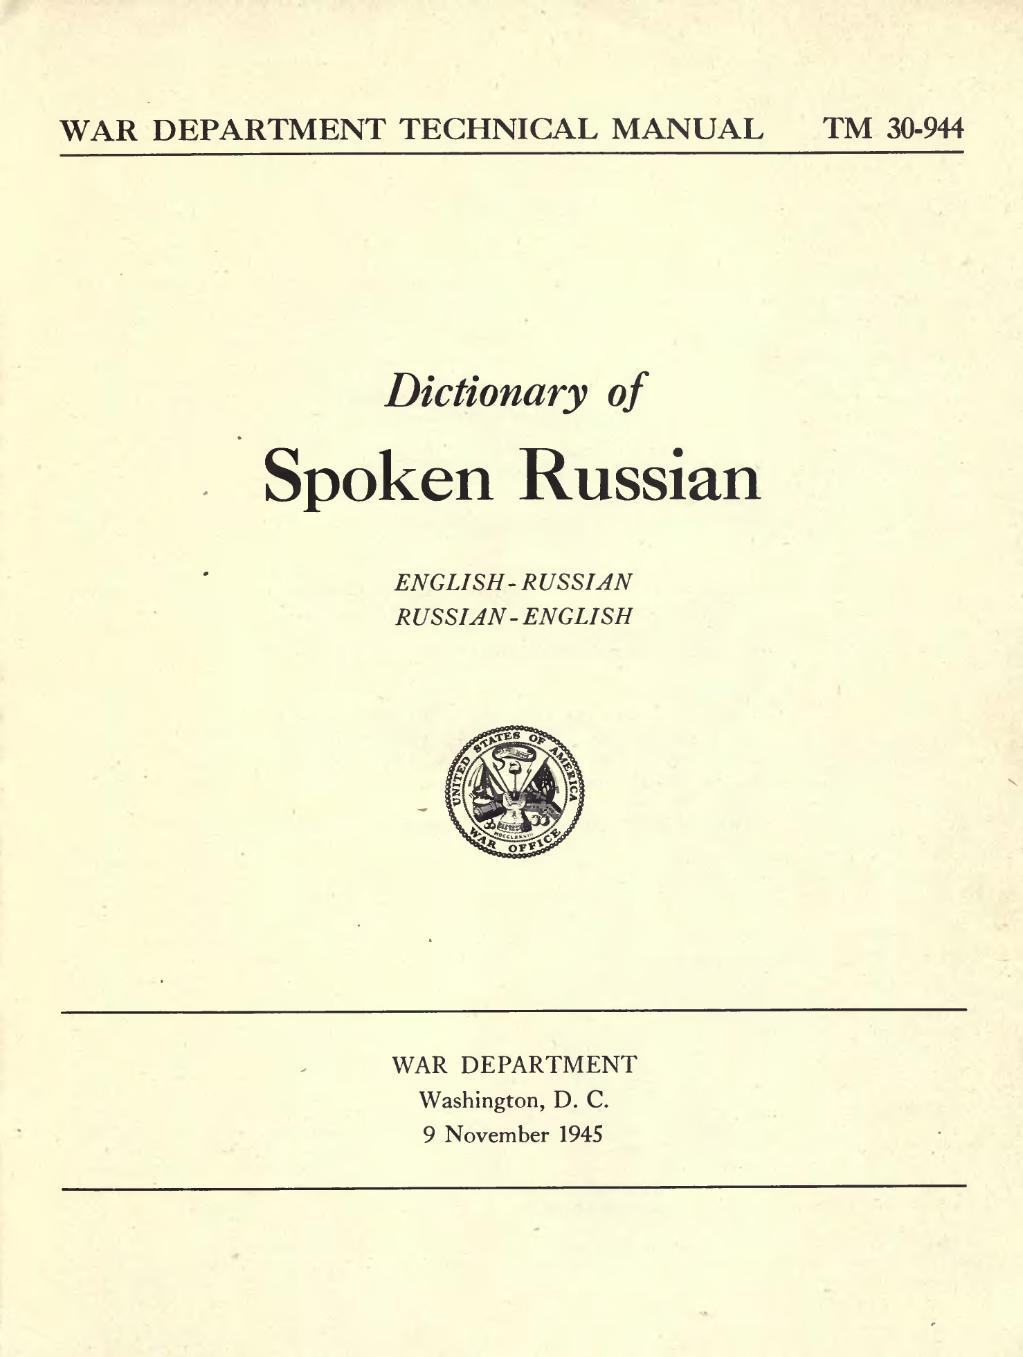 Of Spoken Russian To Be 25